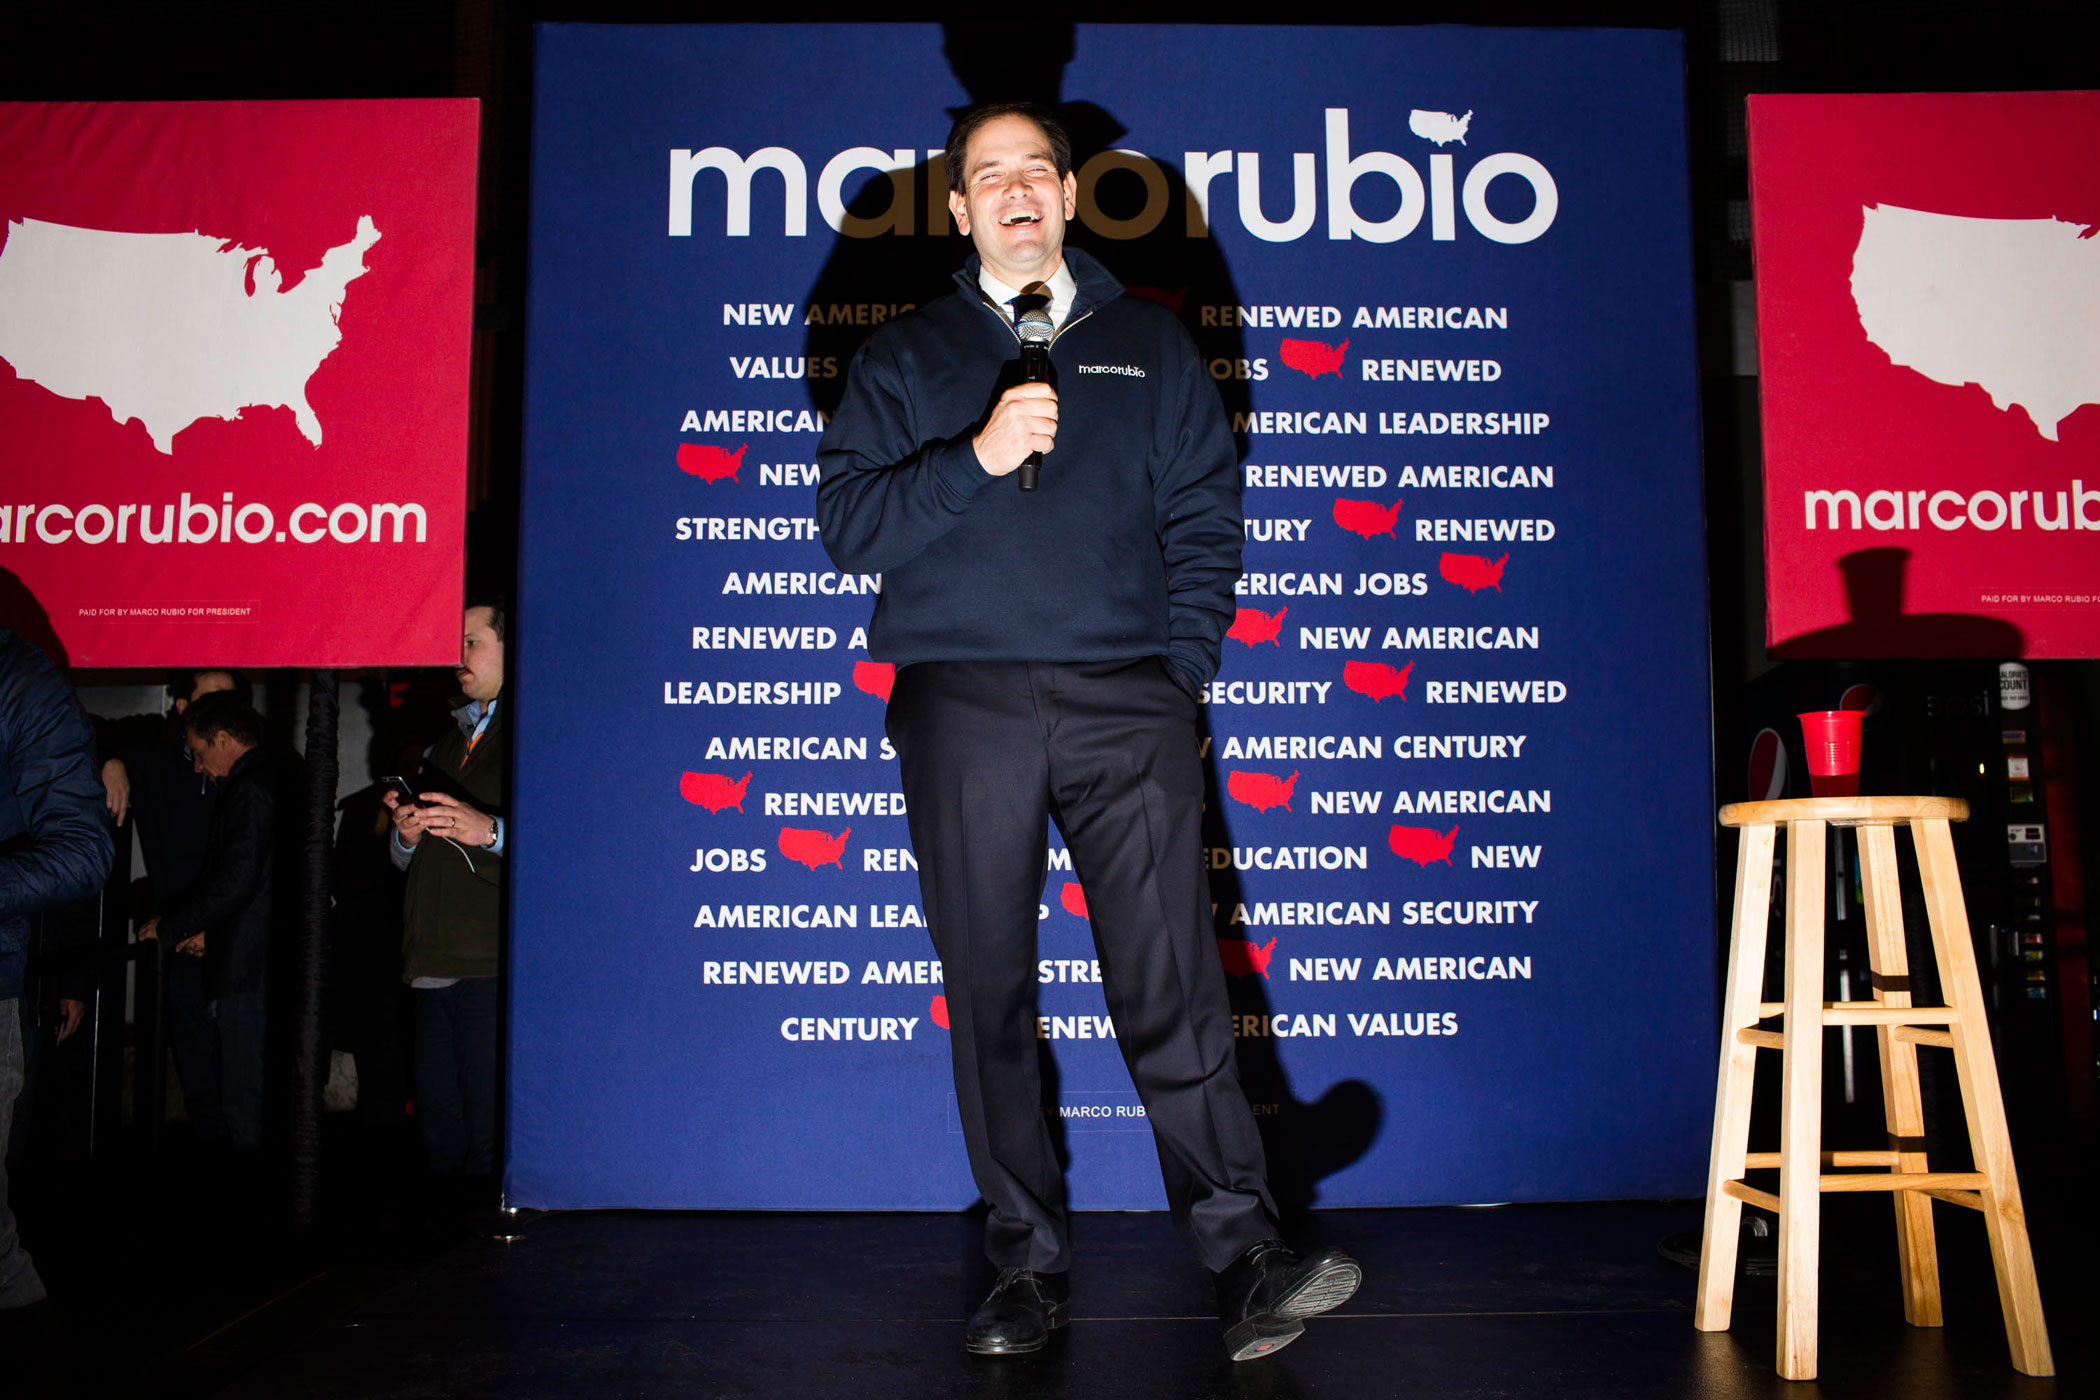 Florida. Sen. Marco Rubio speaks to attendees during a campaign event at the Allard Center on Feb. 7, 2016, in Manchester, N.H.